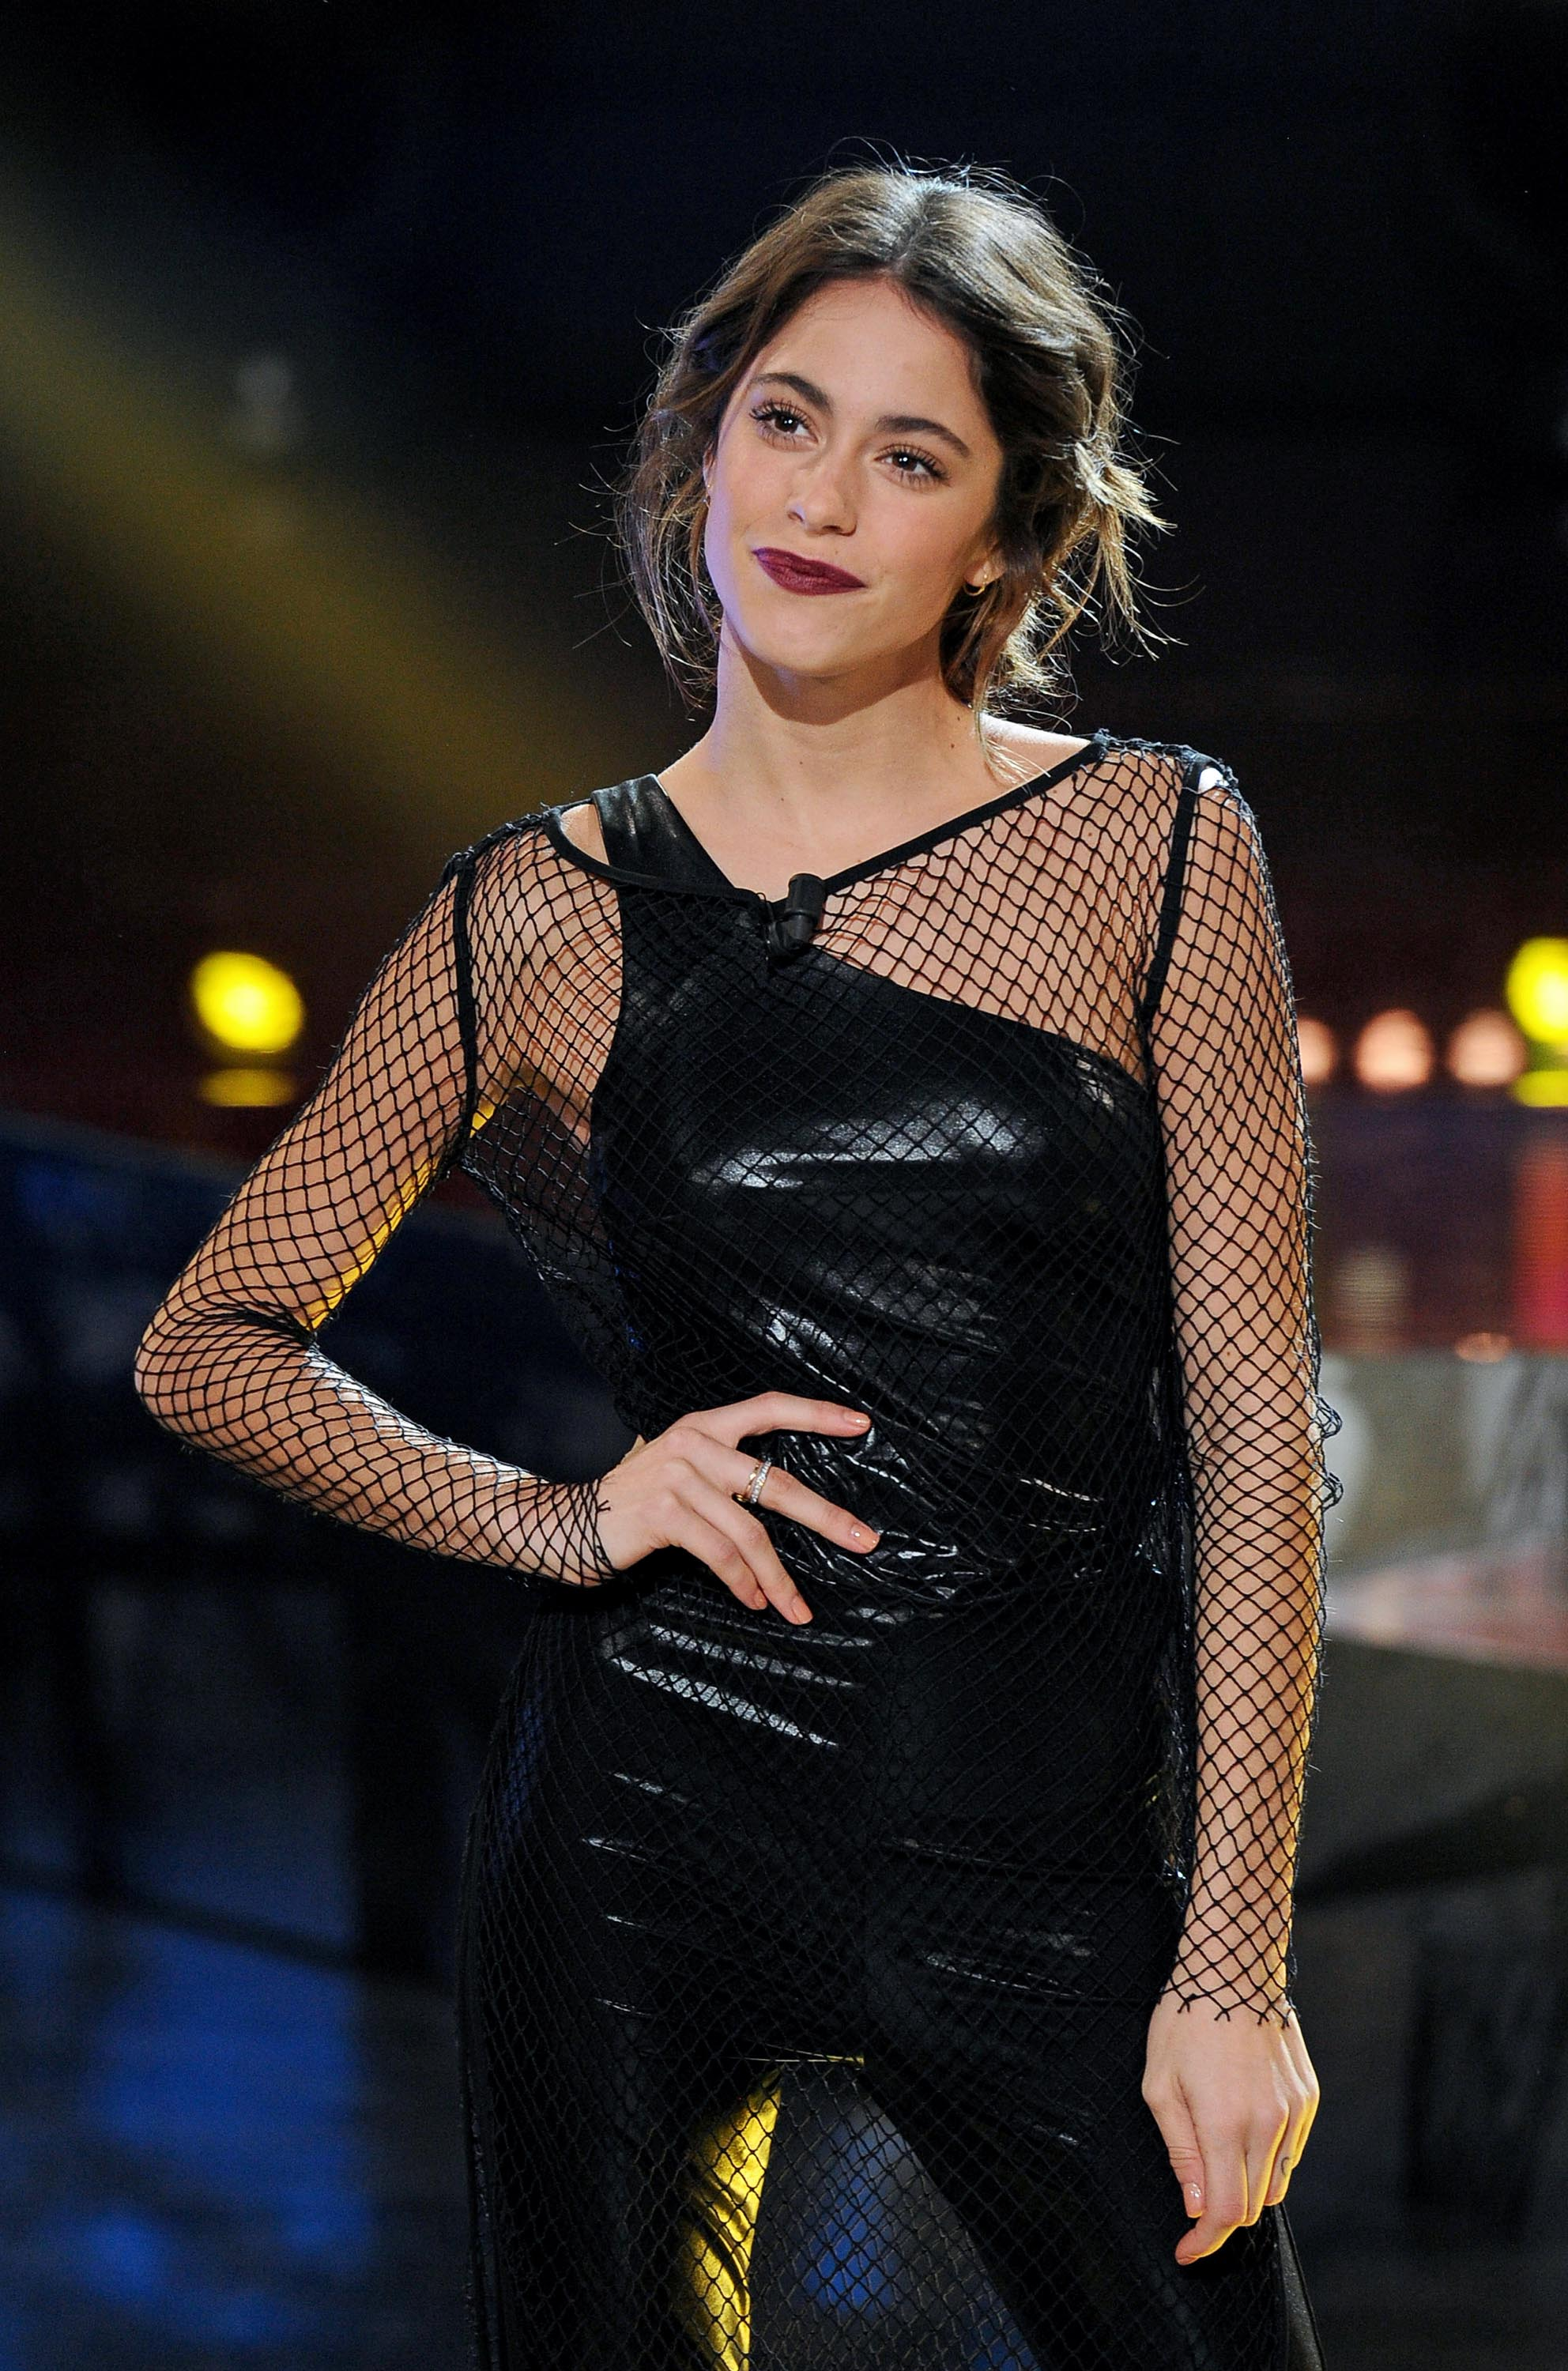 Martina Stoessel attends Italian TV talk show